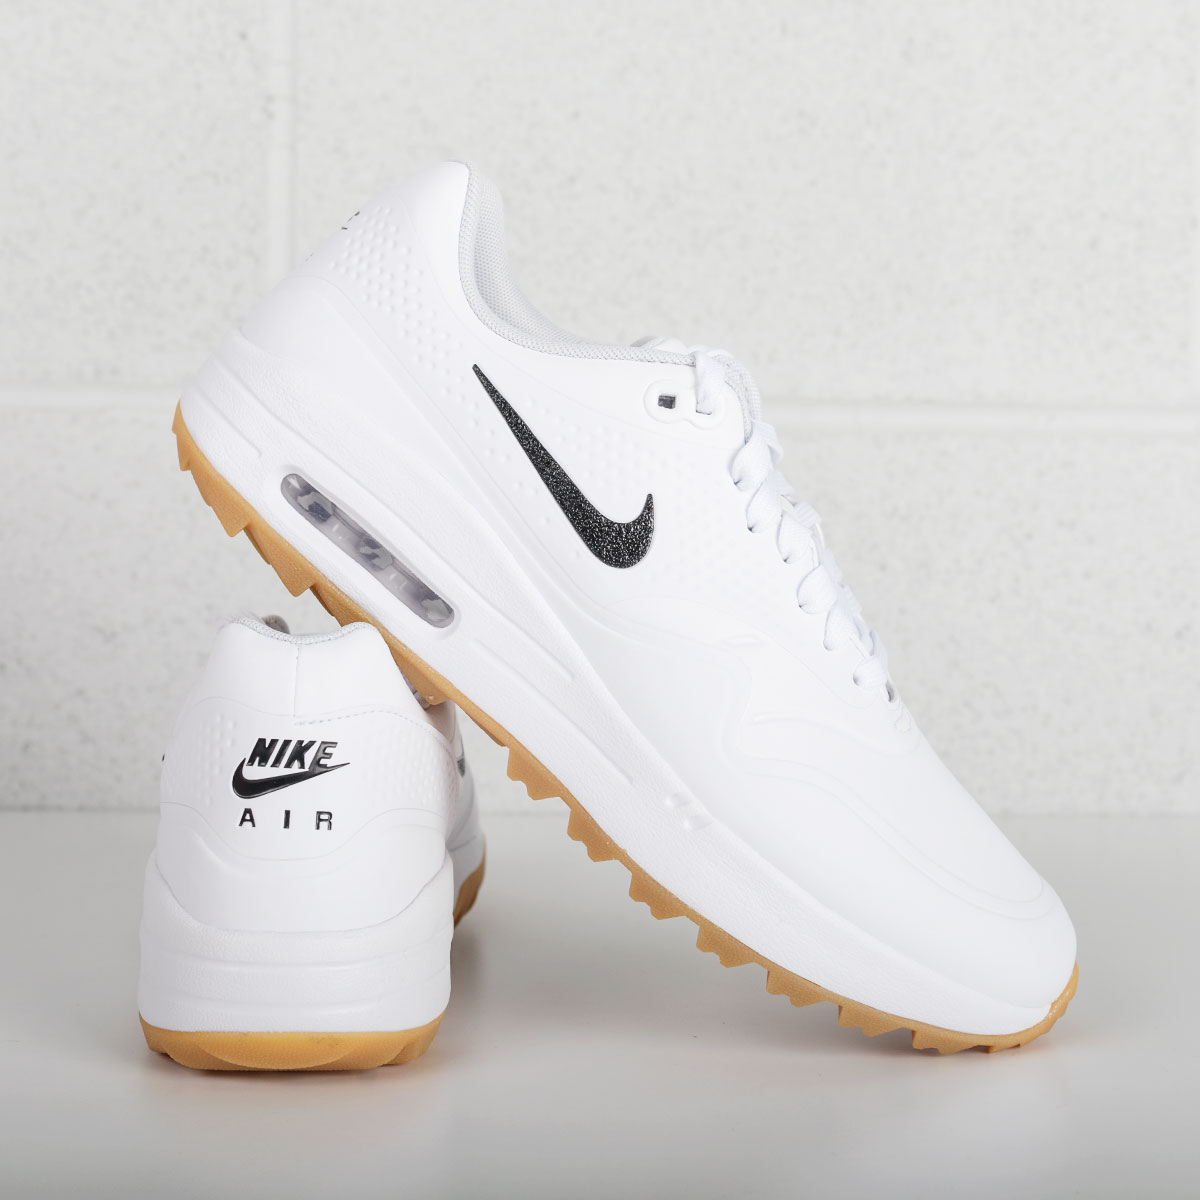 Nike Air Max 1 Golf shoes, including unique